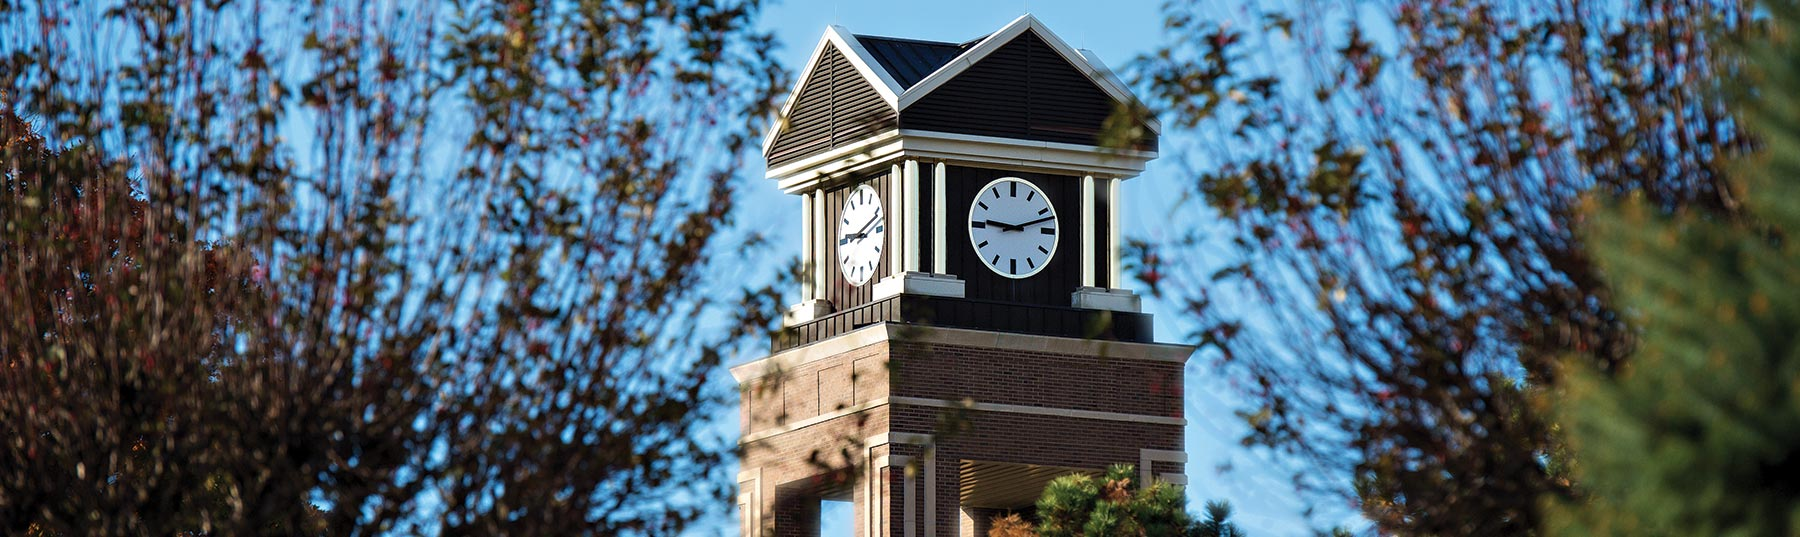 MWSU Clocktower